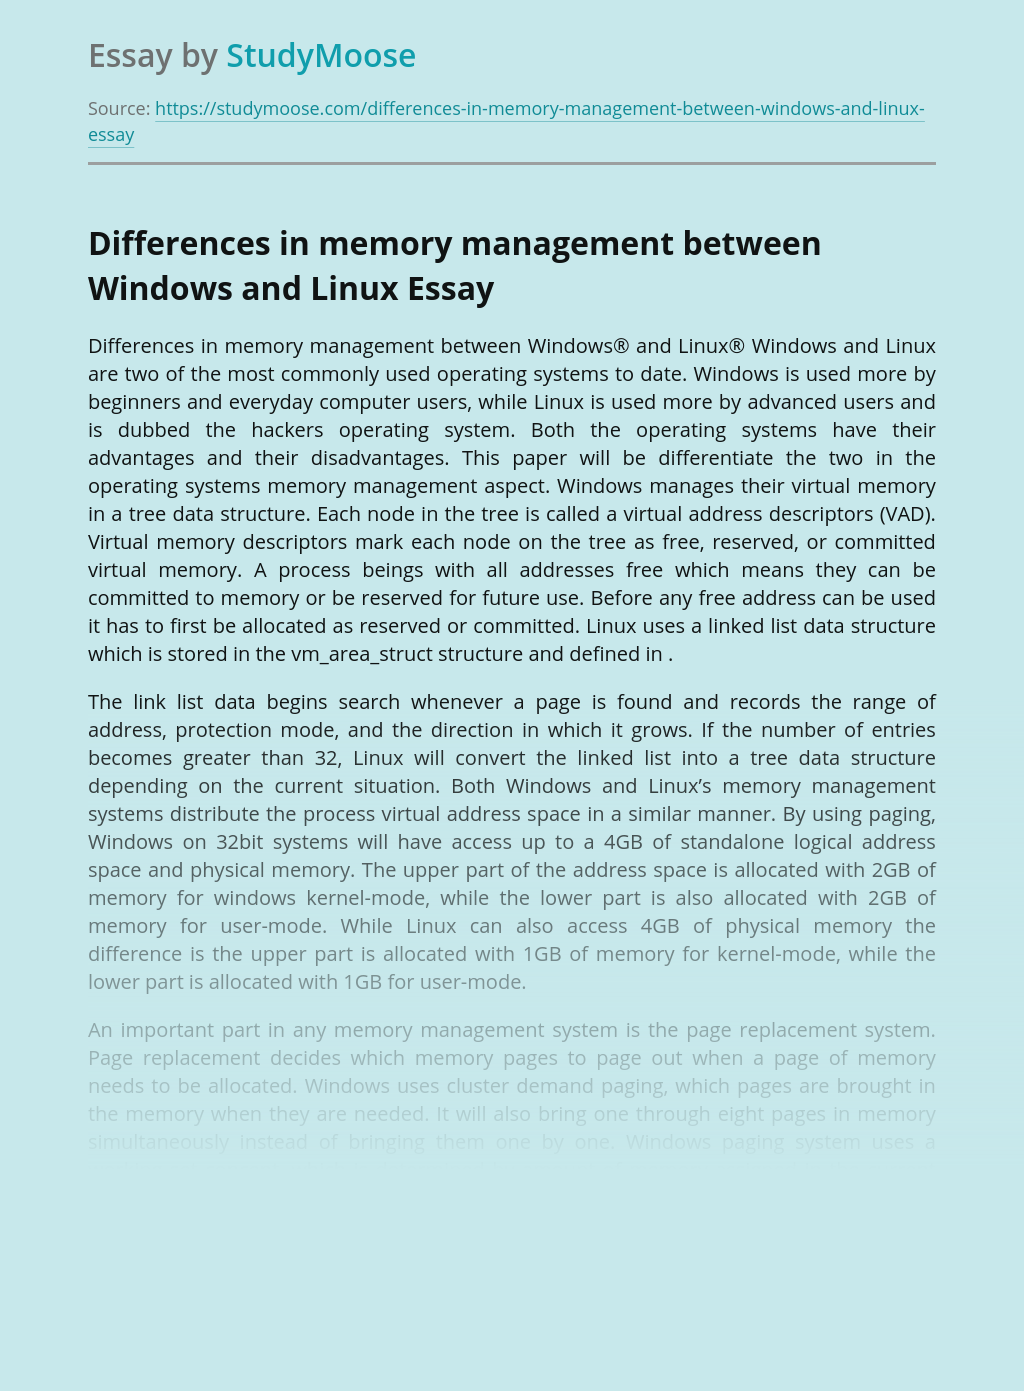 Differences in memory management between Windows and Linux